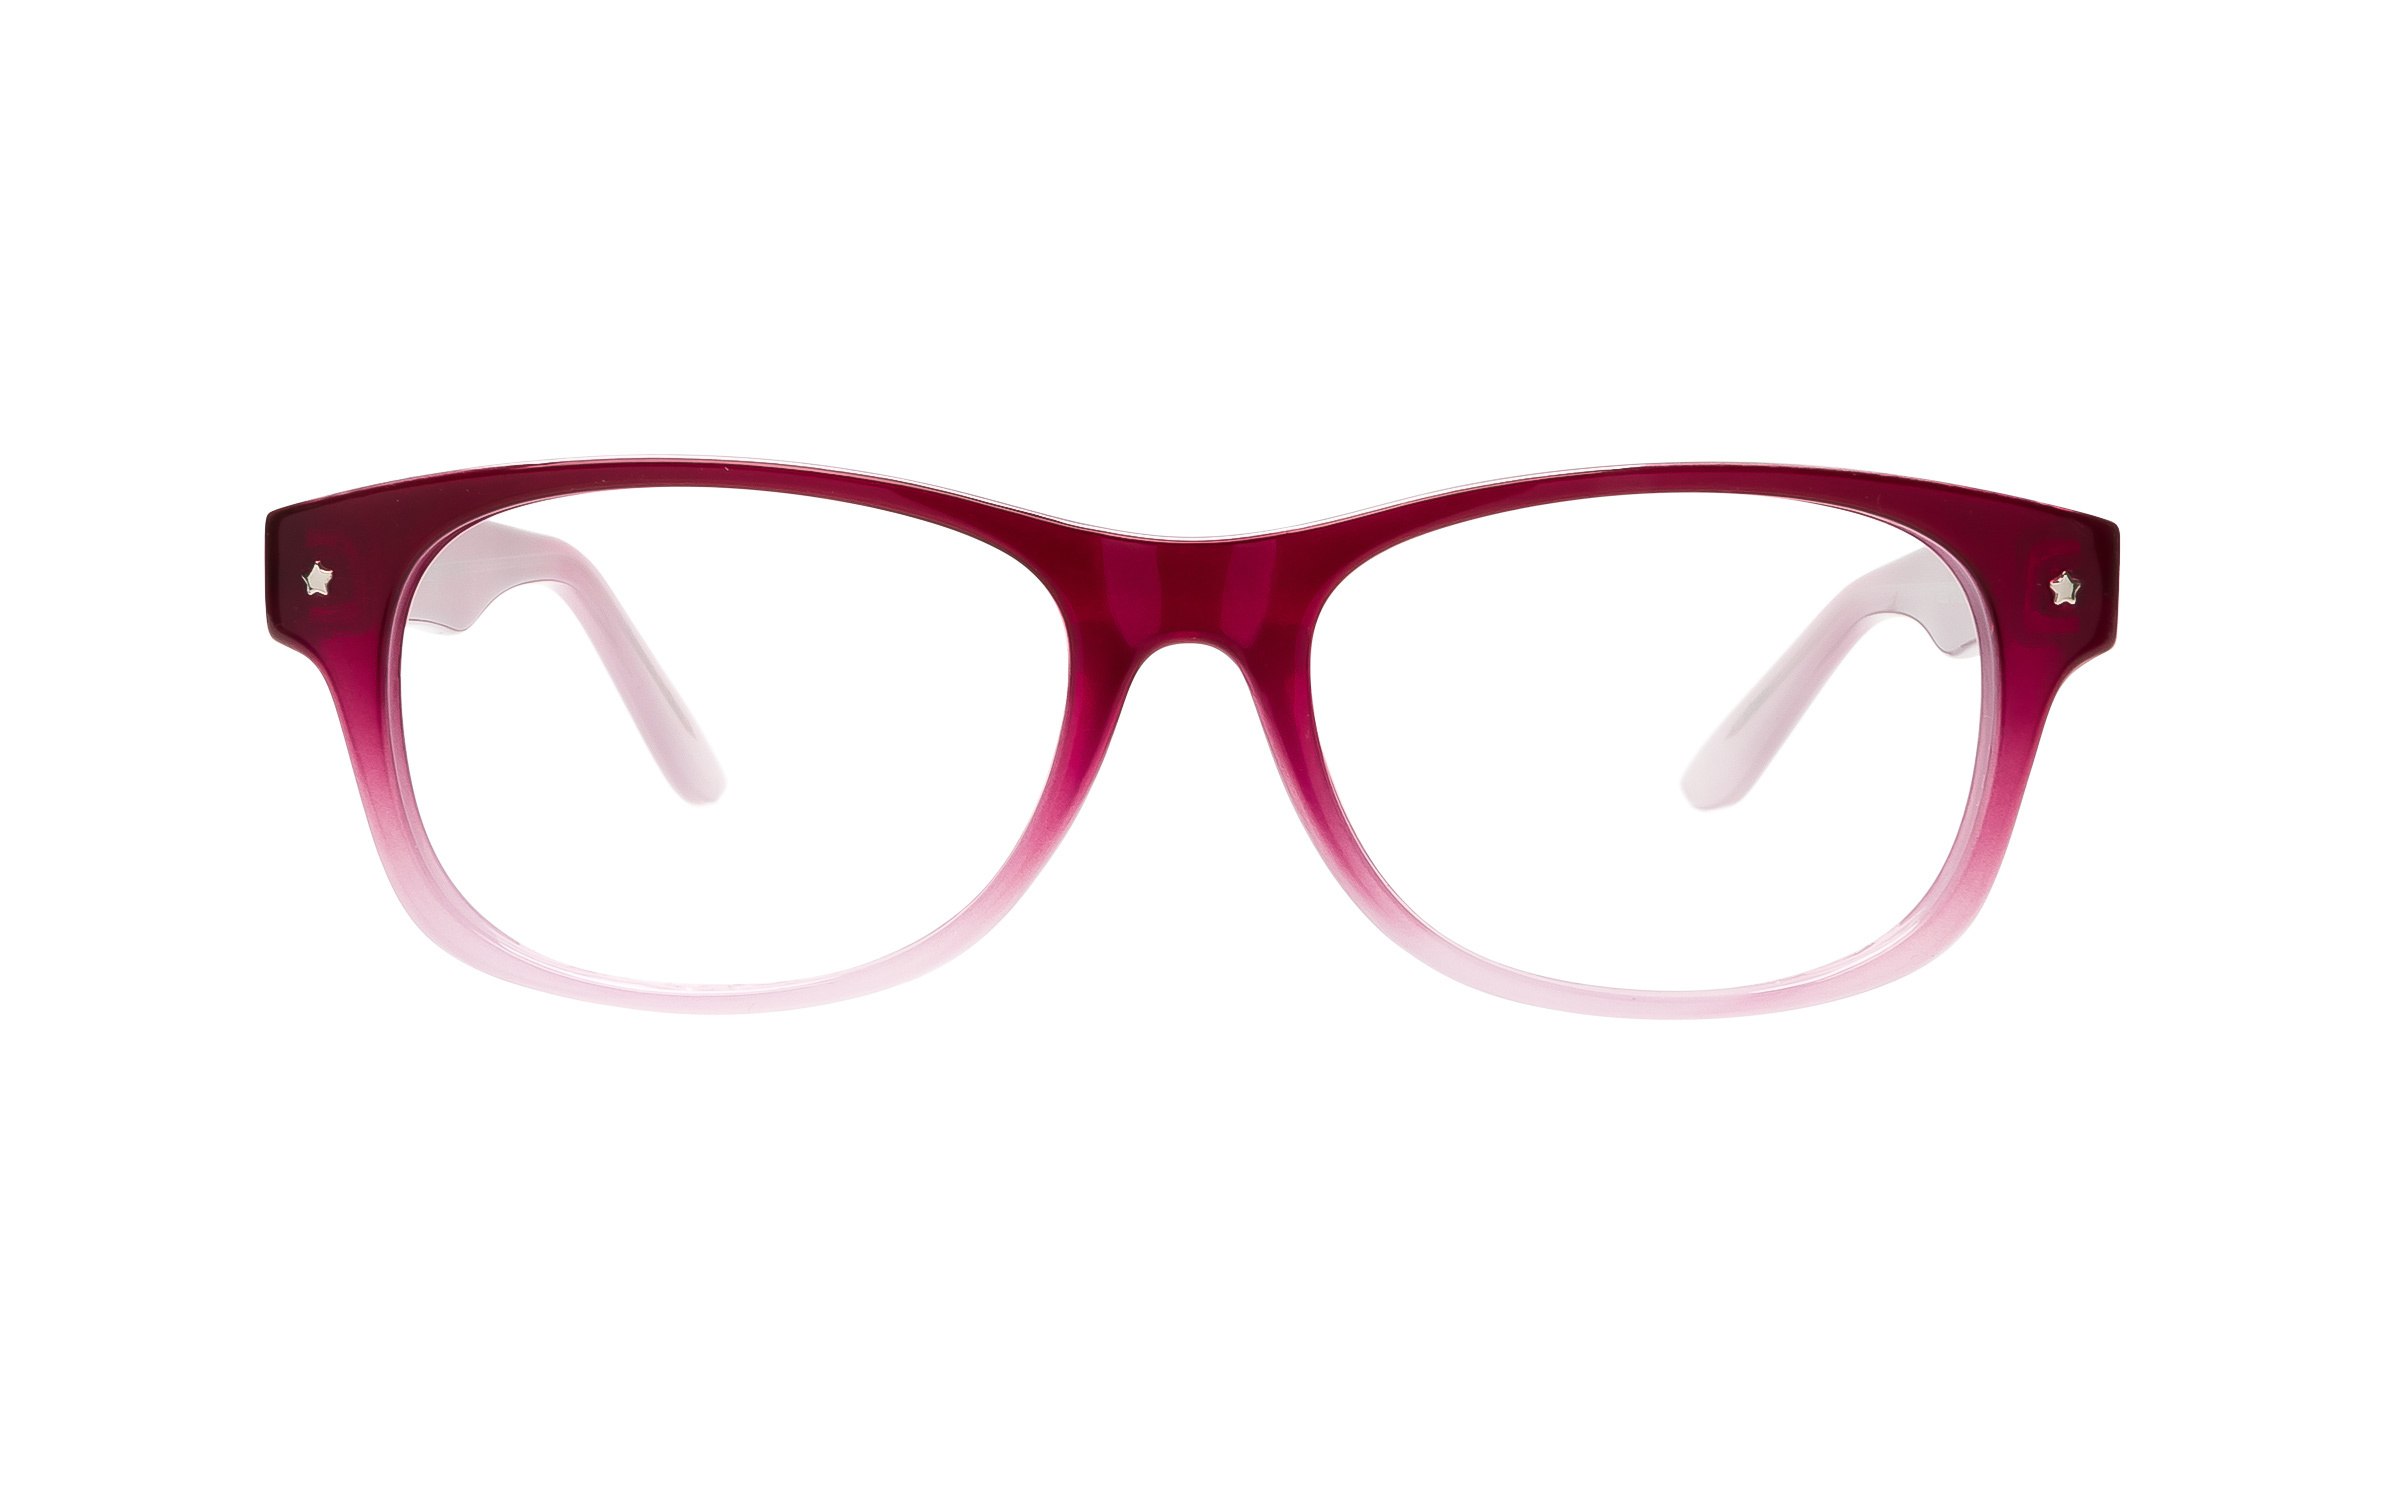 Clearly Basics Rigolet G028 C4 (50) Eyeglasses and Frame in Fade Pink/Clear | Metal - Online Coastal